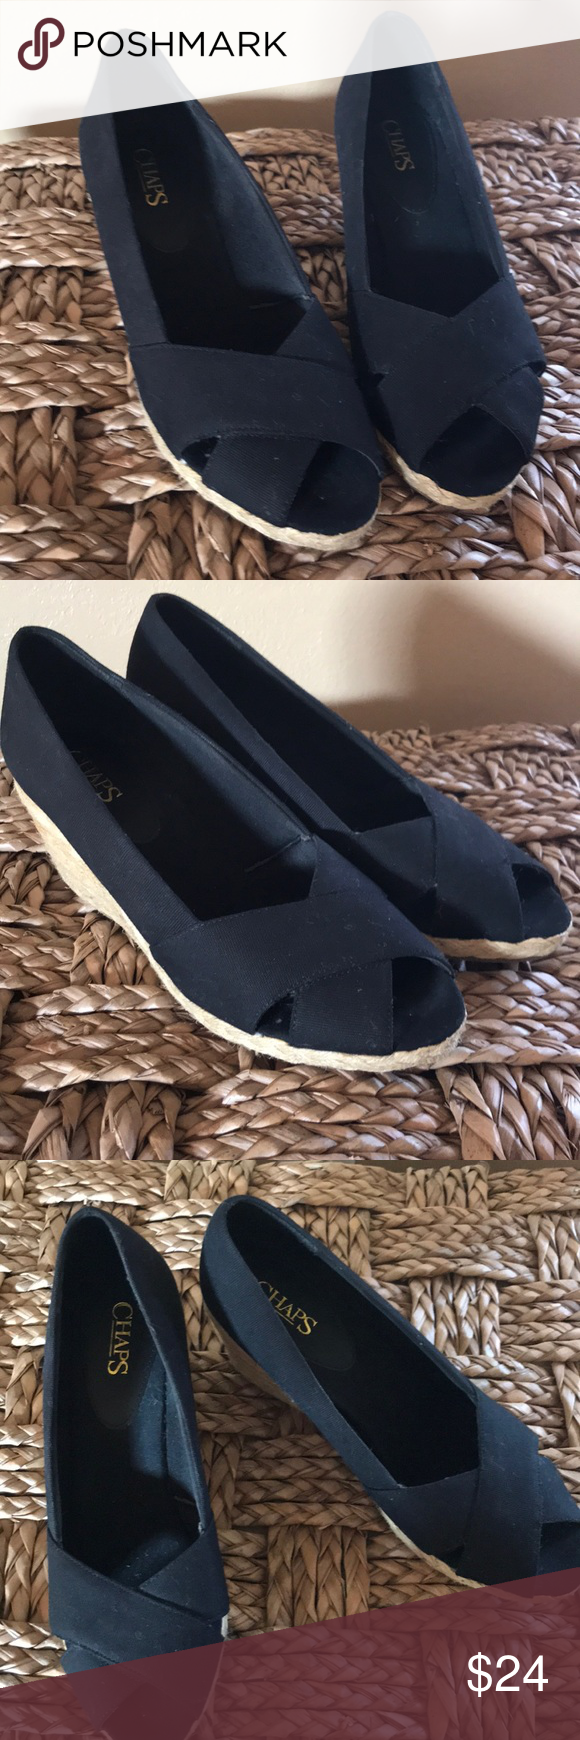 4f30fe70bc59 Women s Chaps wedges EUC Black and natural wedges with open toe. Chaps Shoes  Wedges